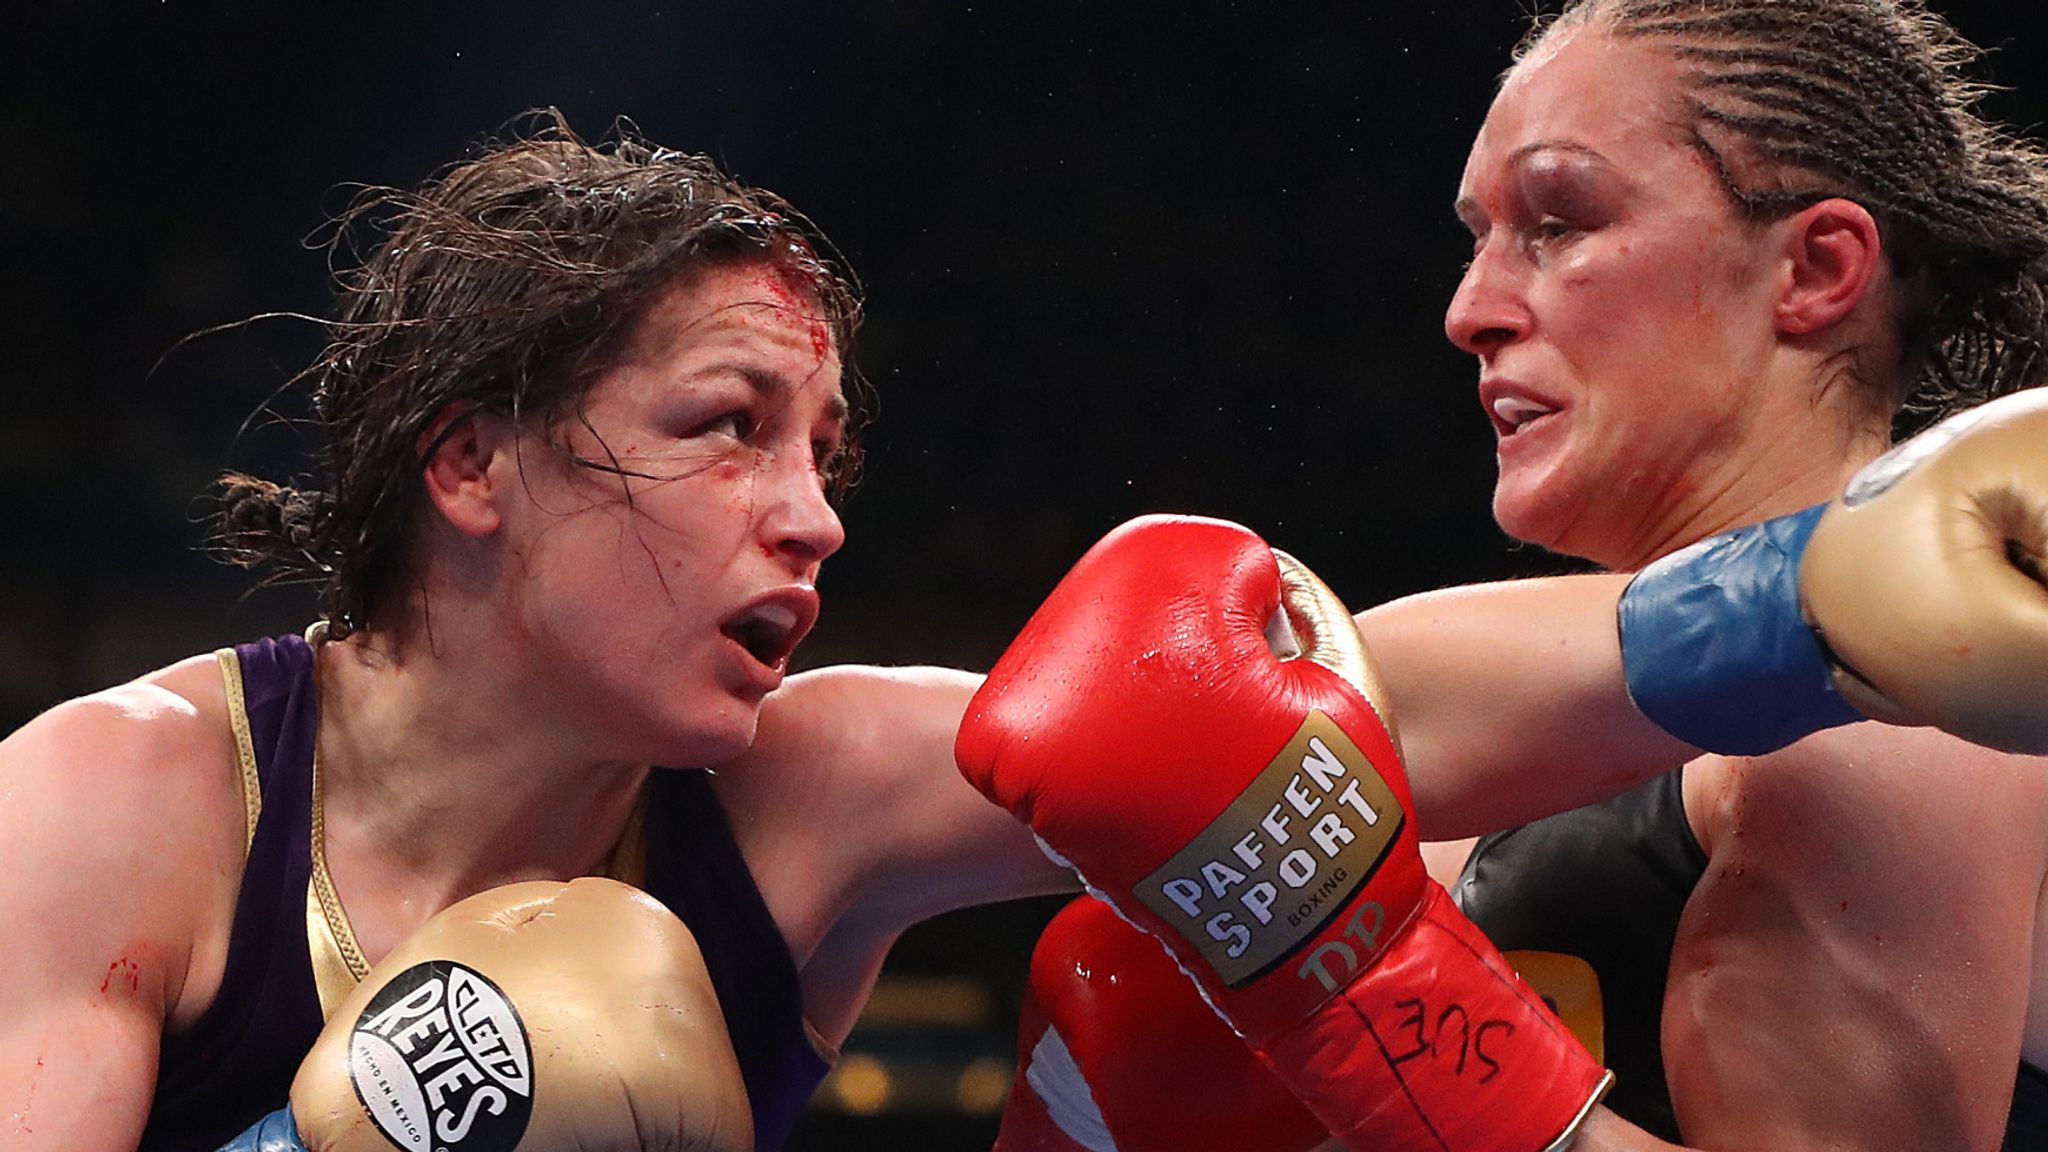 Katie Taylor's battle with Delfine Persoon a 'watershed moment' for women's boxing